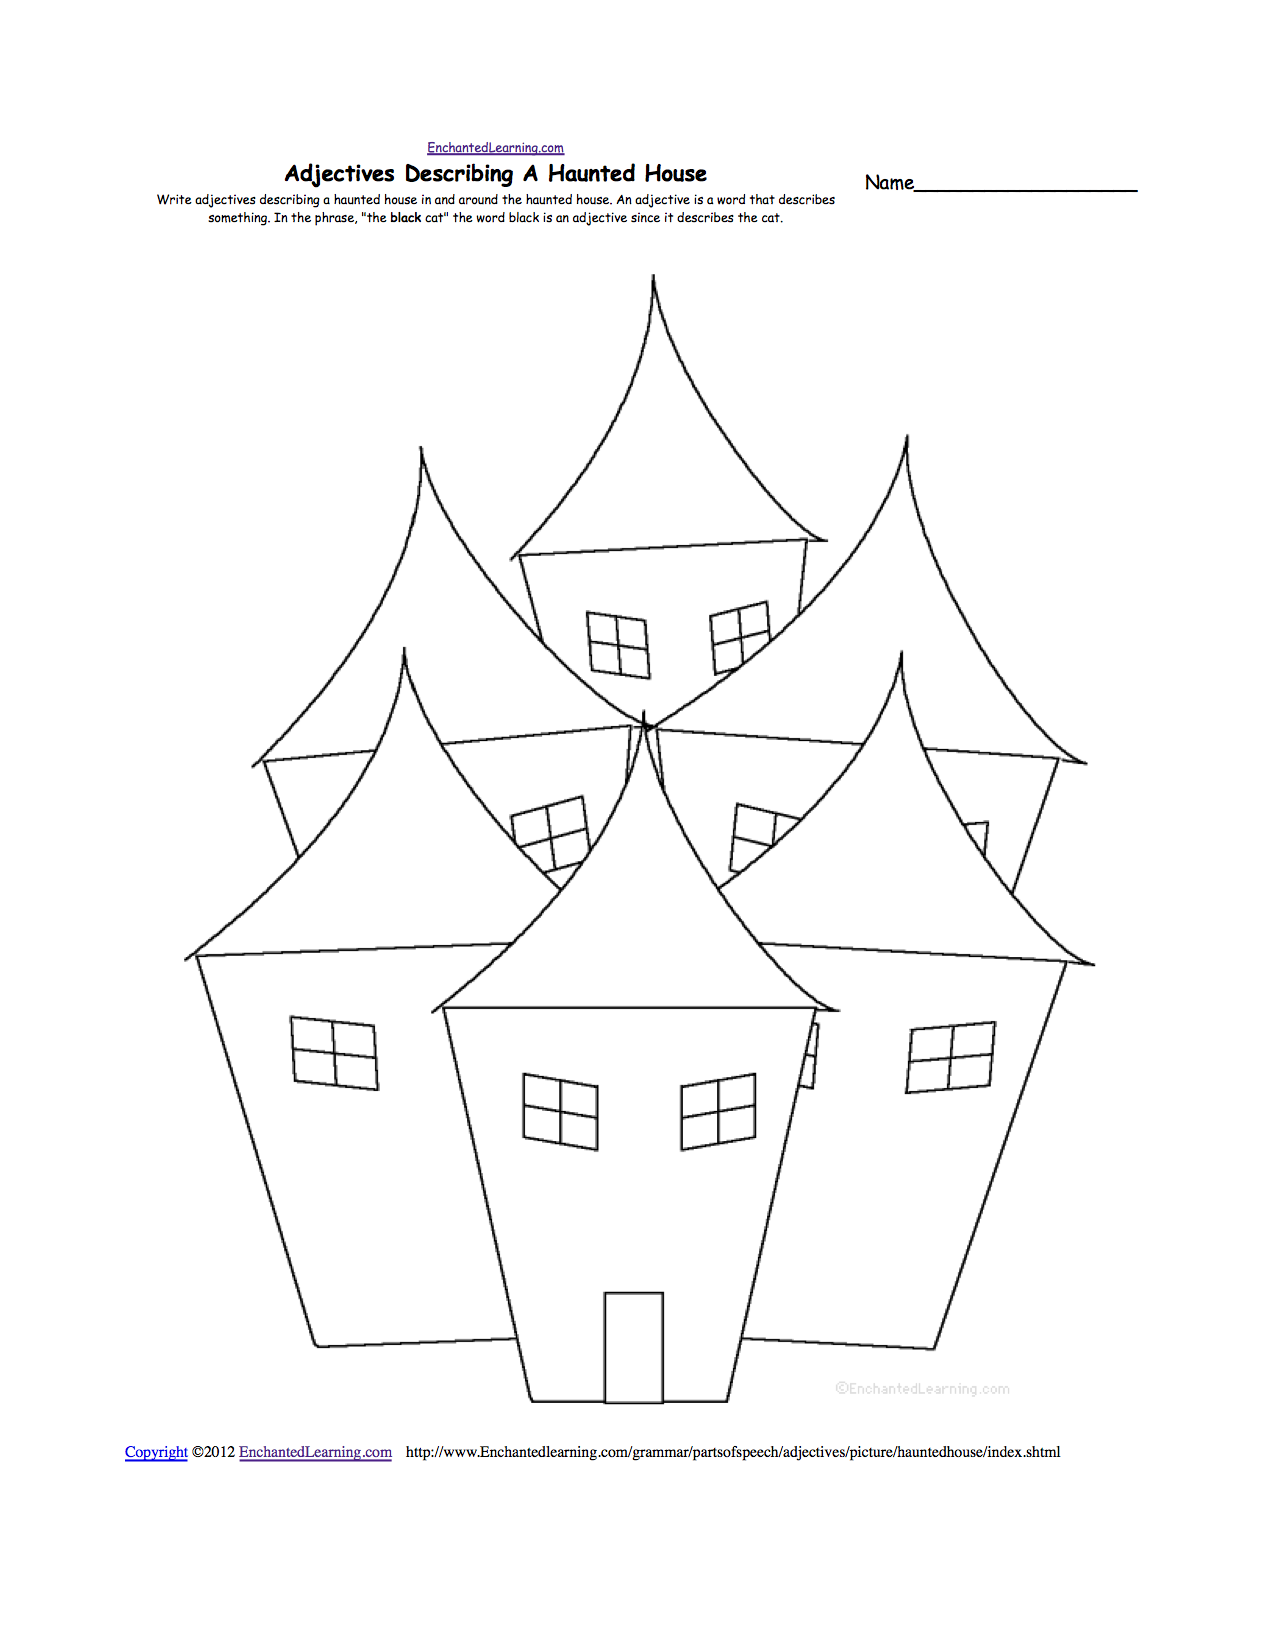 Drawn haunted house big house Homes Dwellings Other at haunted